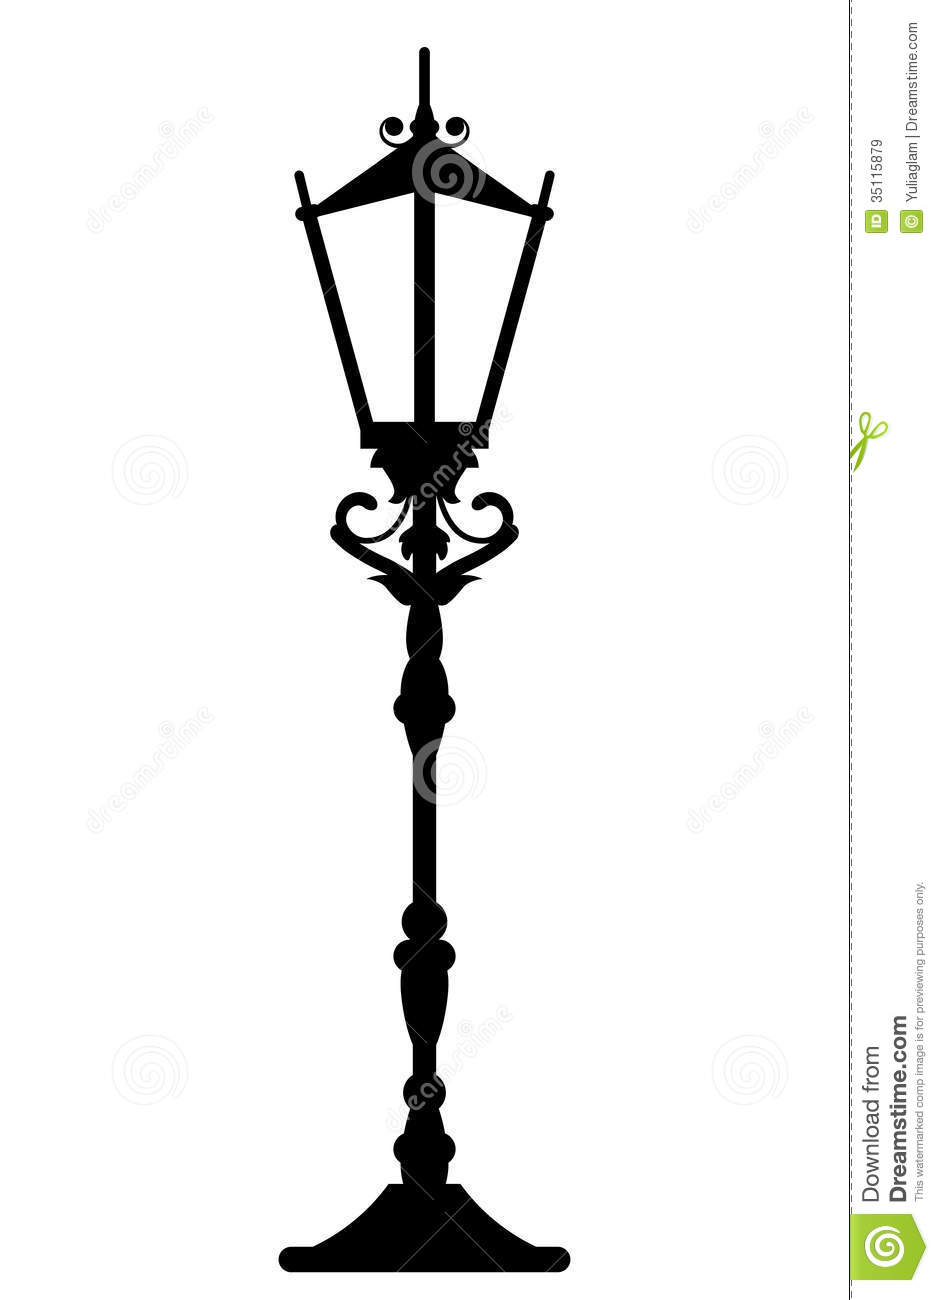 Vintage Streetlight Royalty Free Stock Images - Image: 35115879